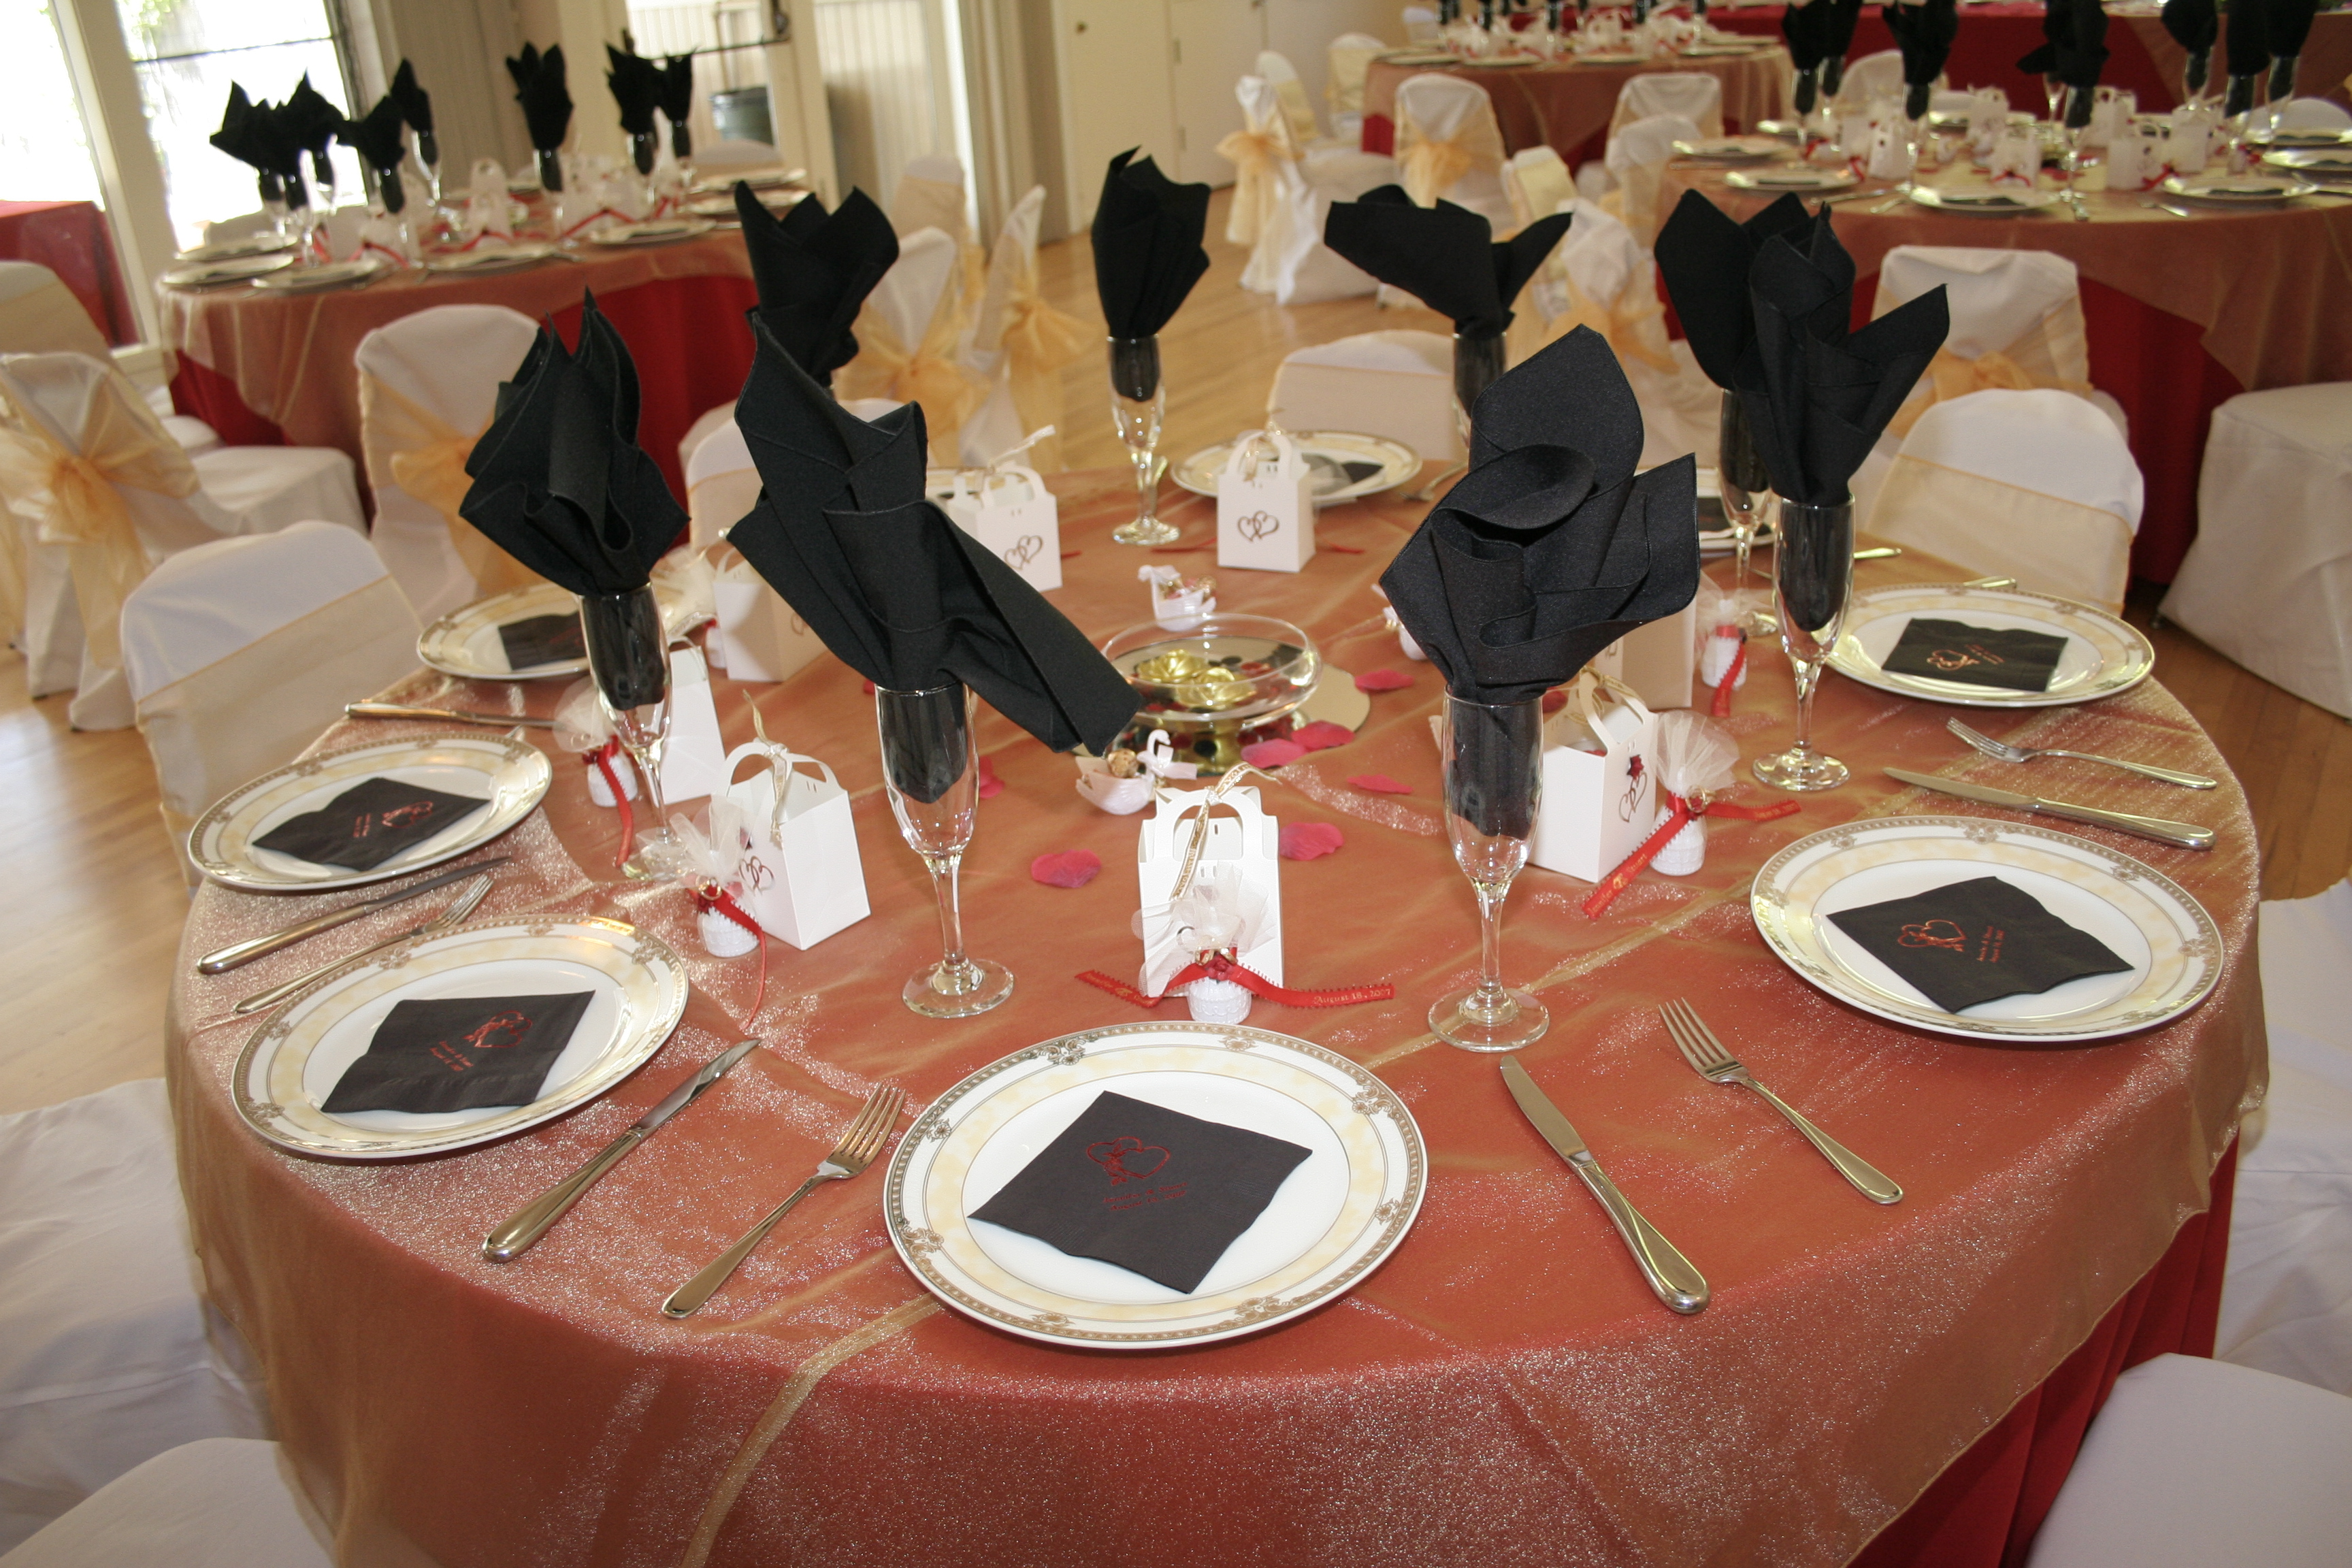 Table by ALL EVENTS PHOTOGRAPHY & VIDEO PRODUCTIONS